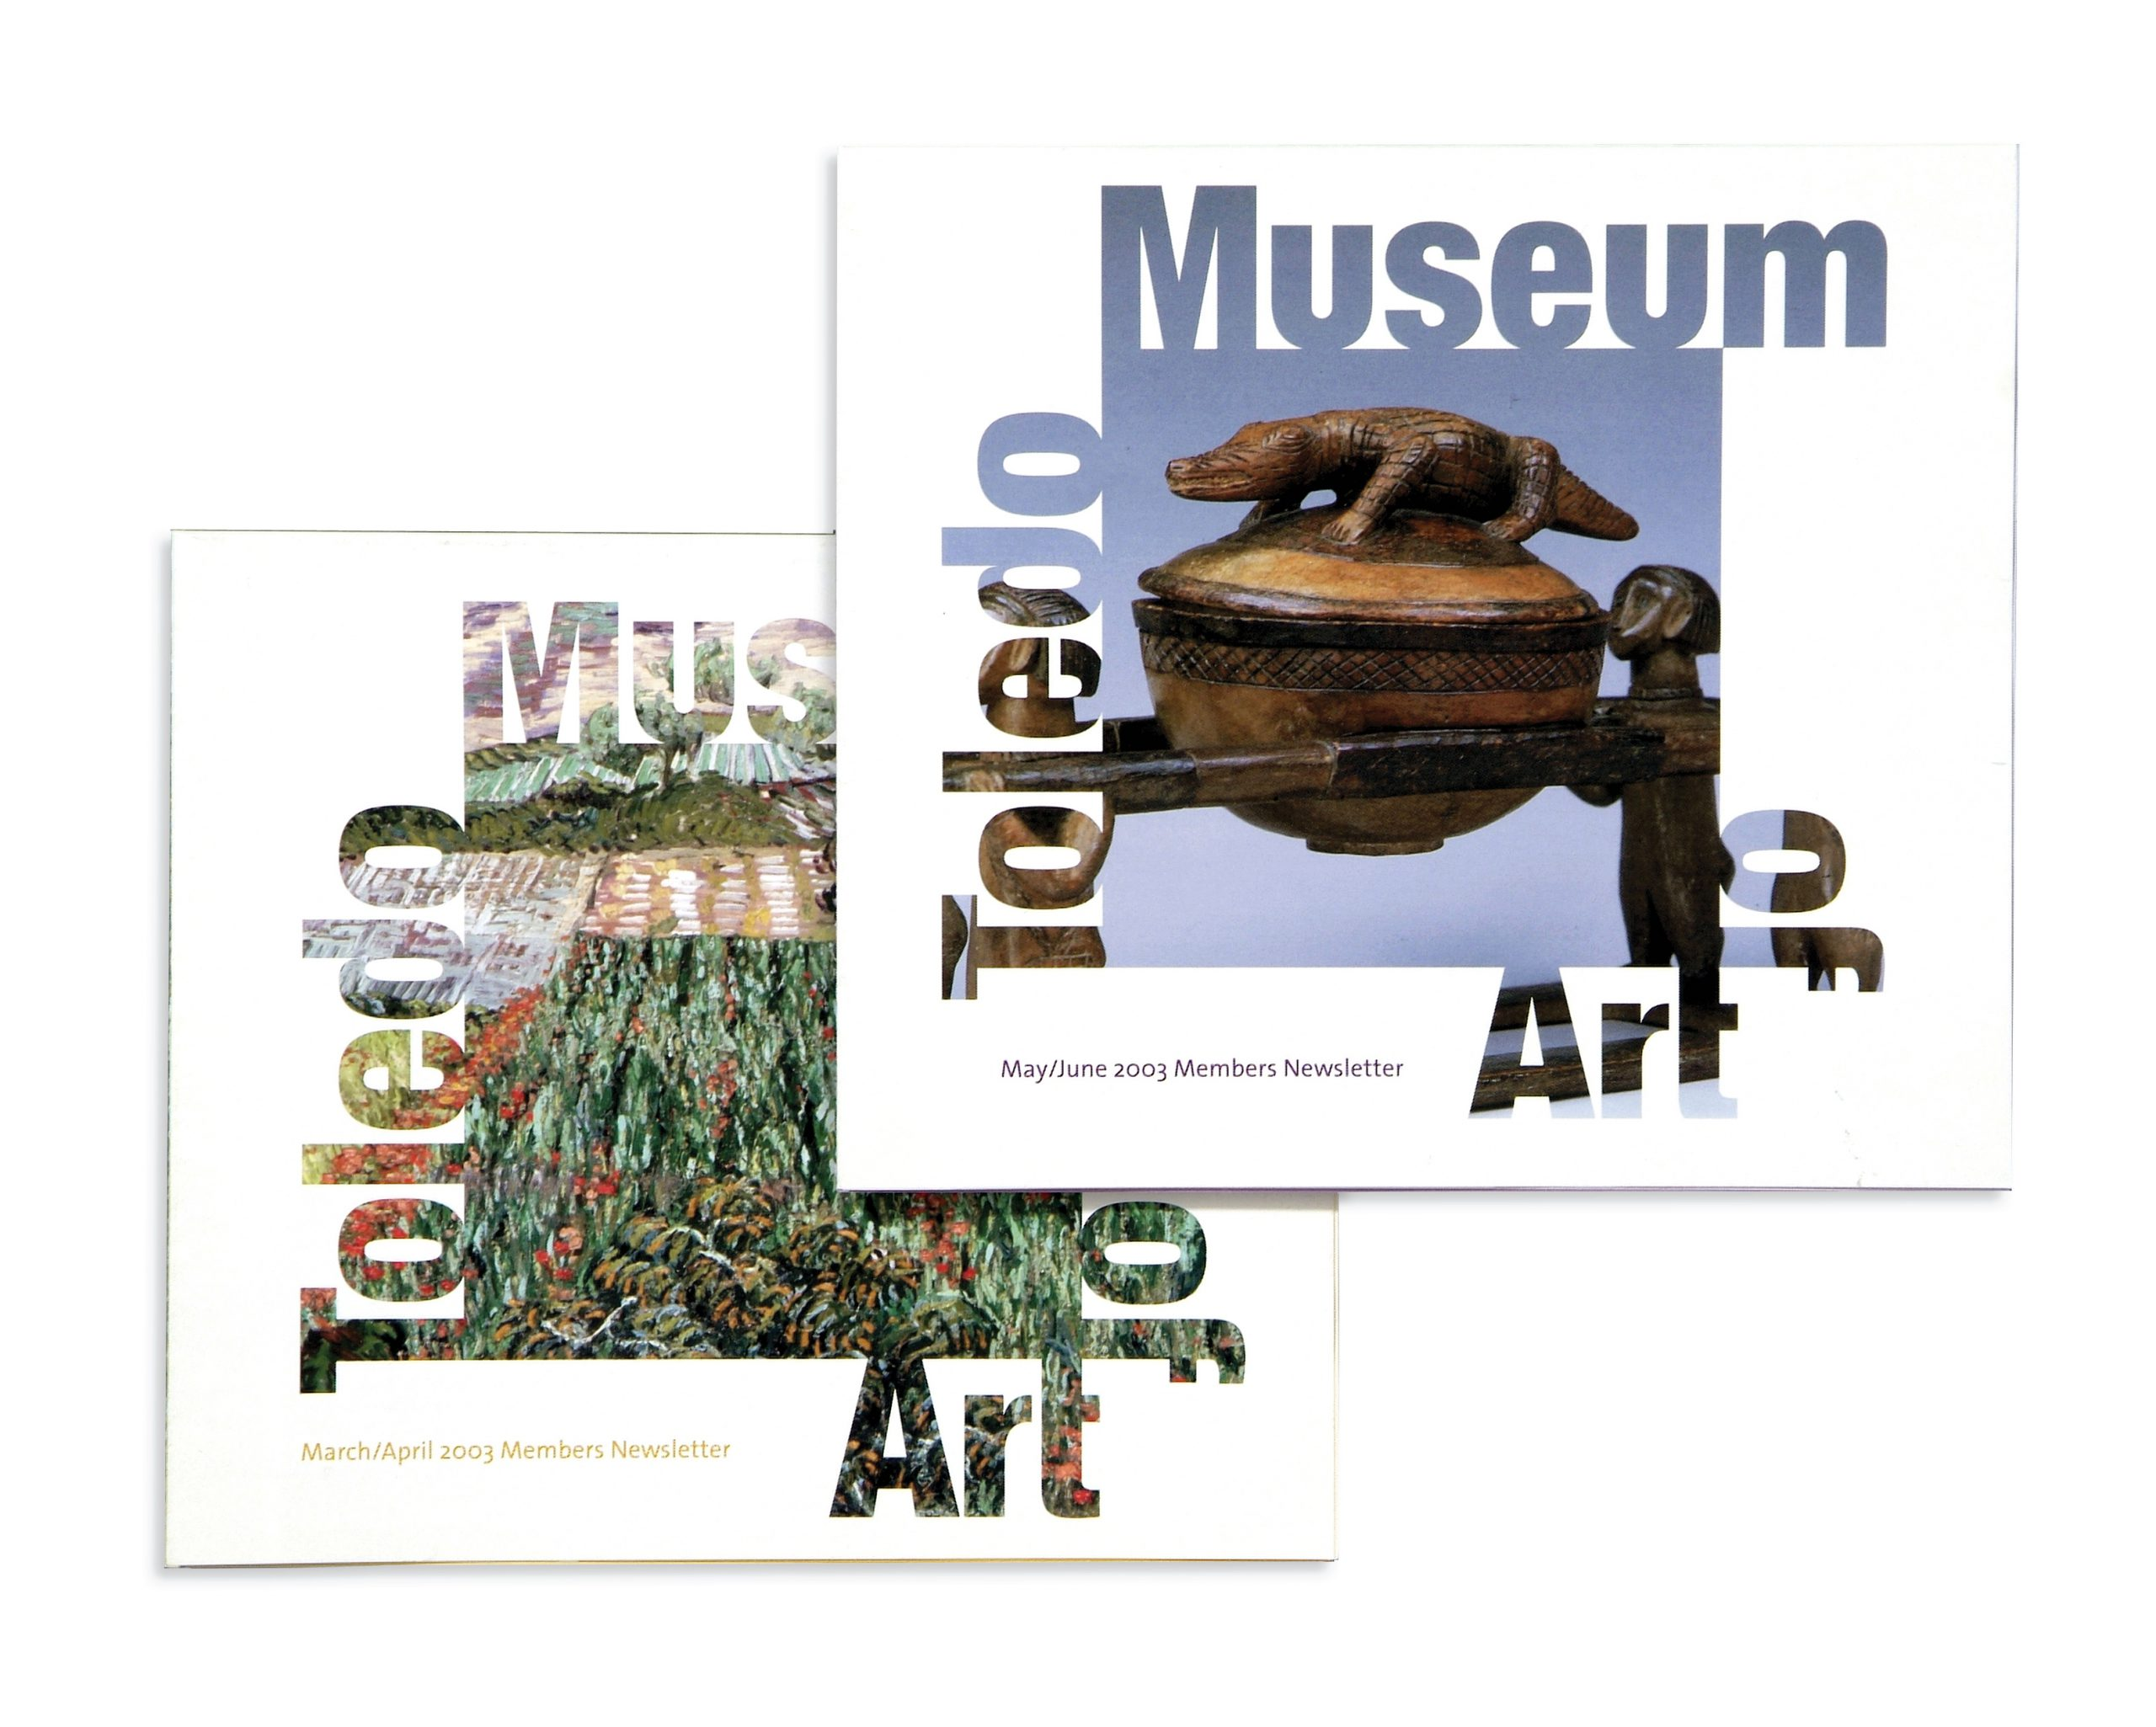 Project image 2 for Identity, Toledo Museum of Art